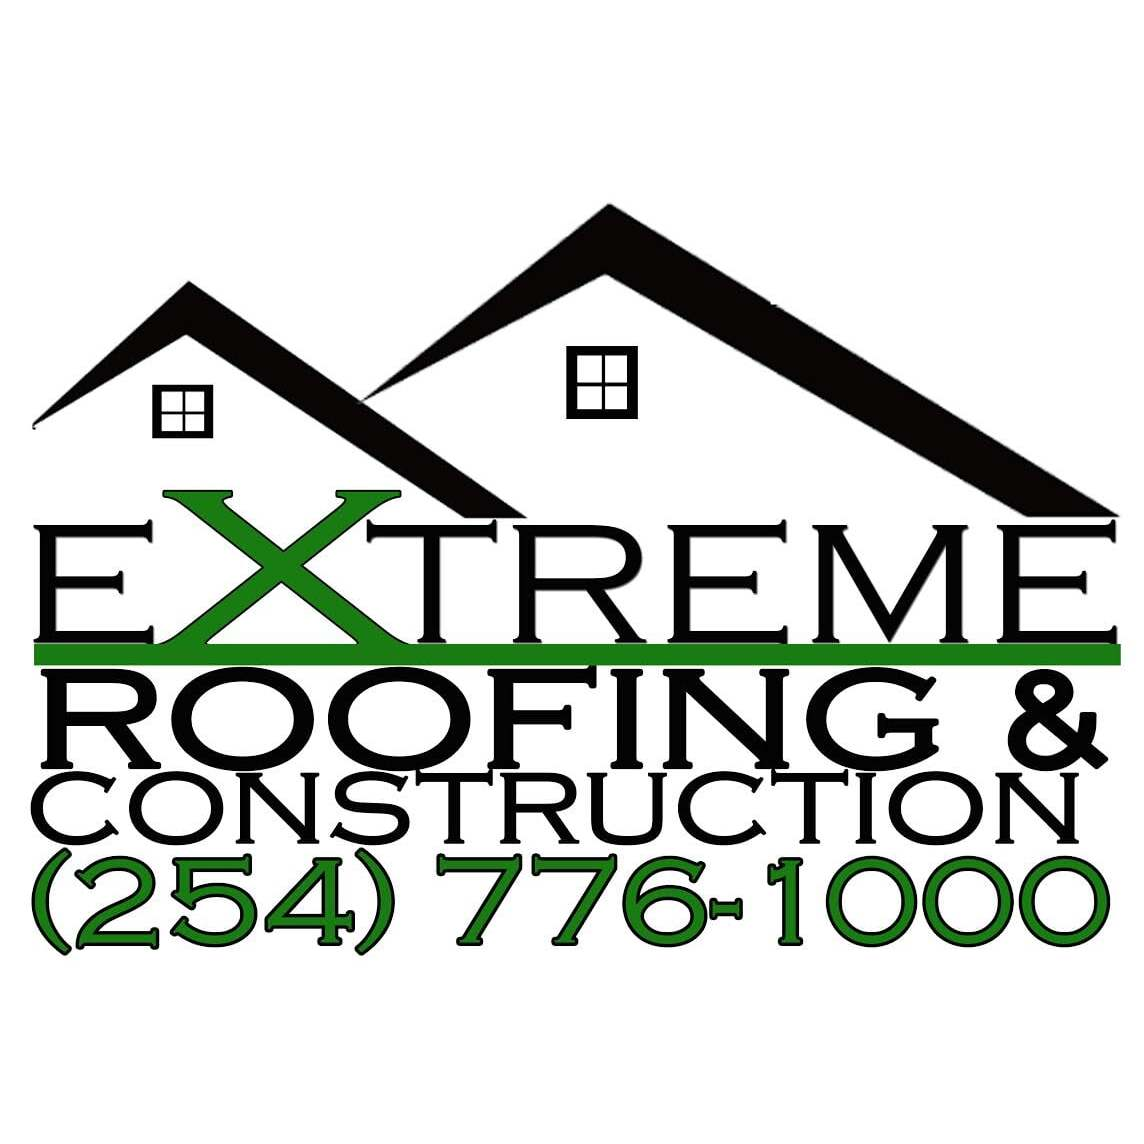 Extreme Roofing Amp Construction Waco Tx 76708 254 776